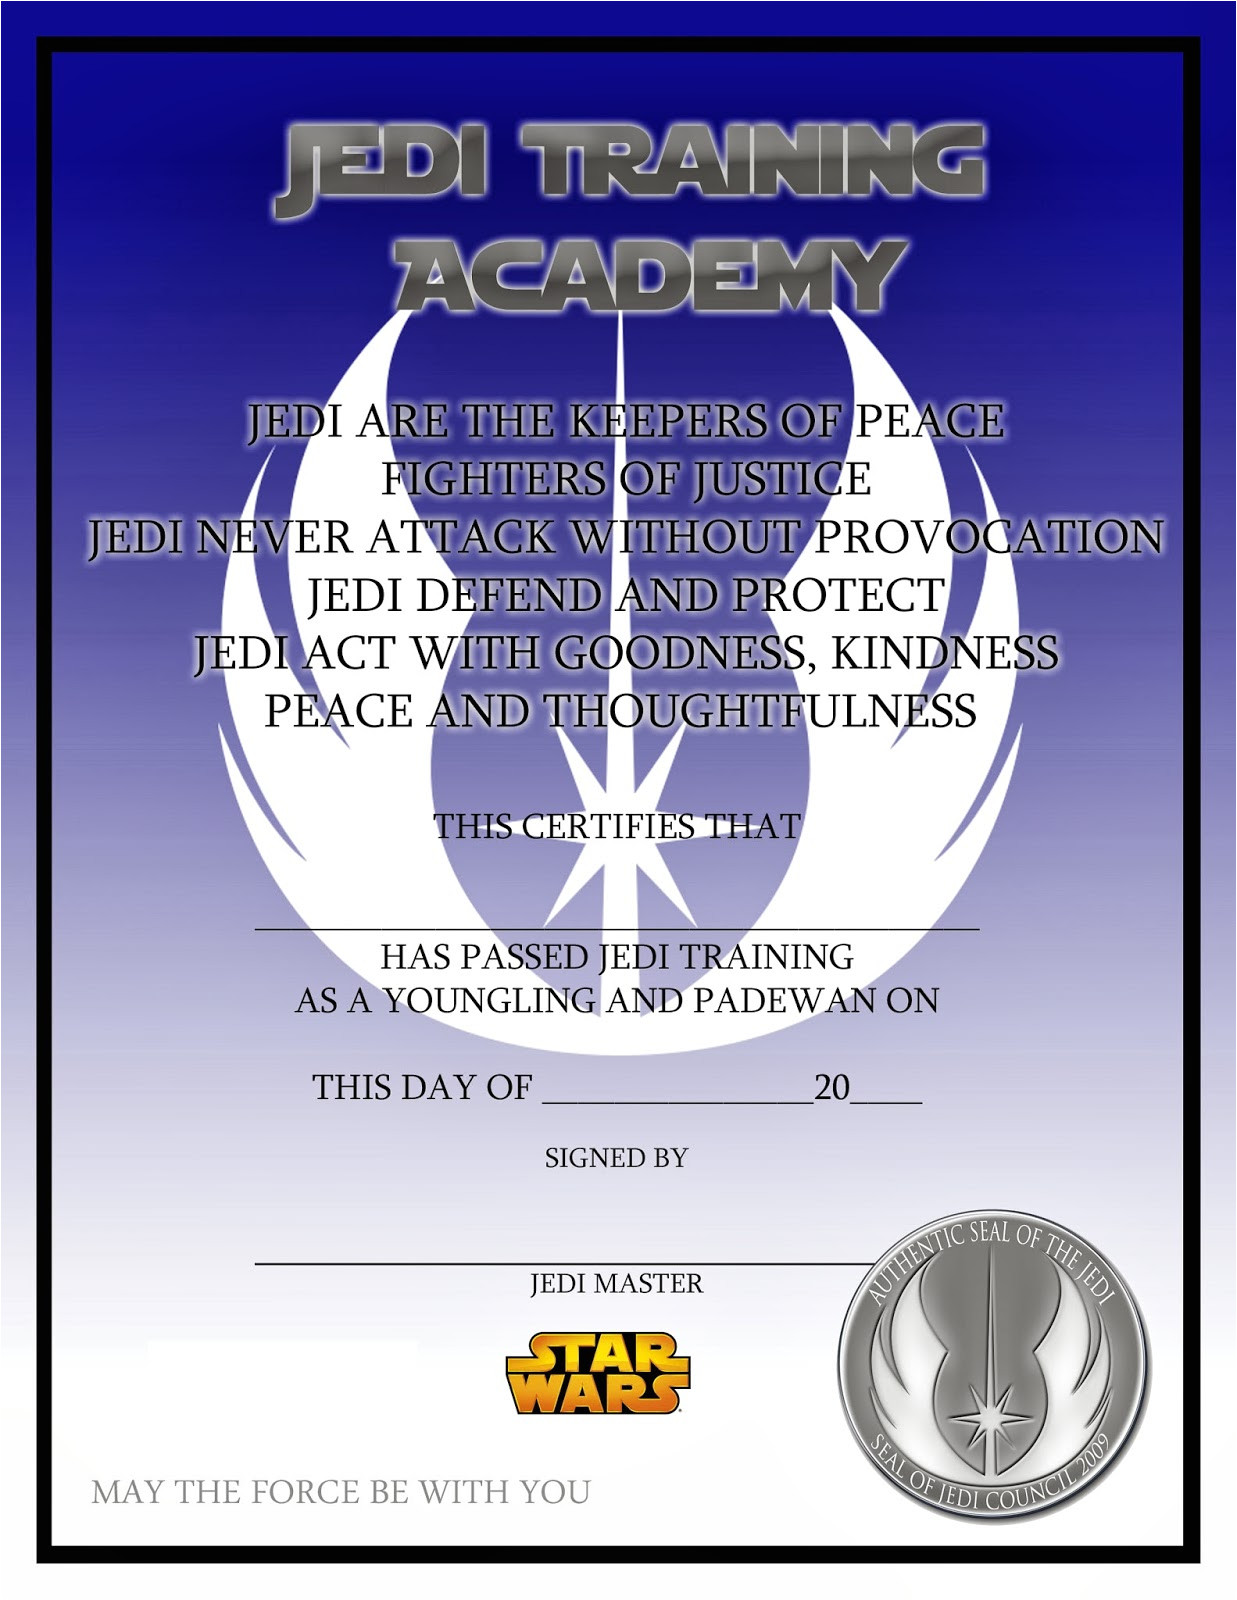 star wars jedi training certificate free